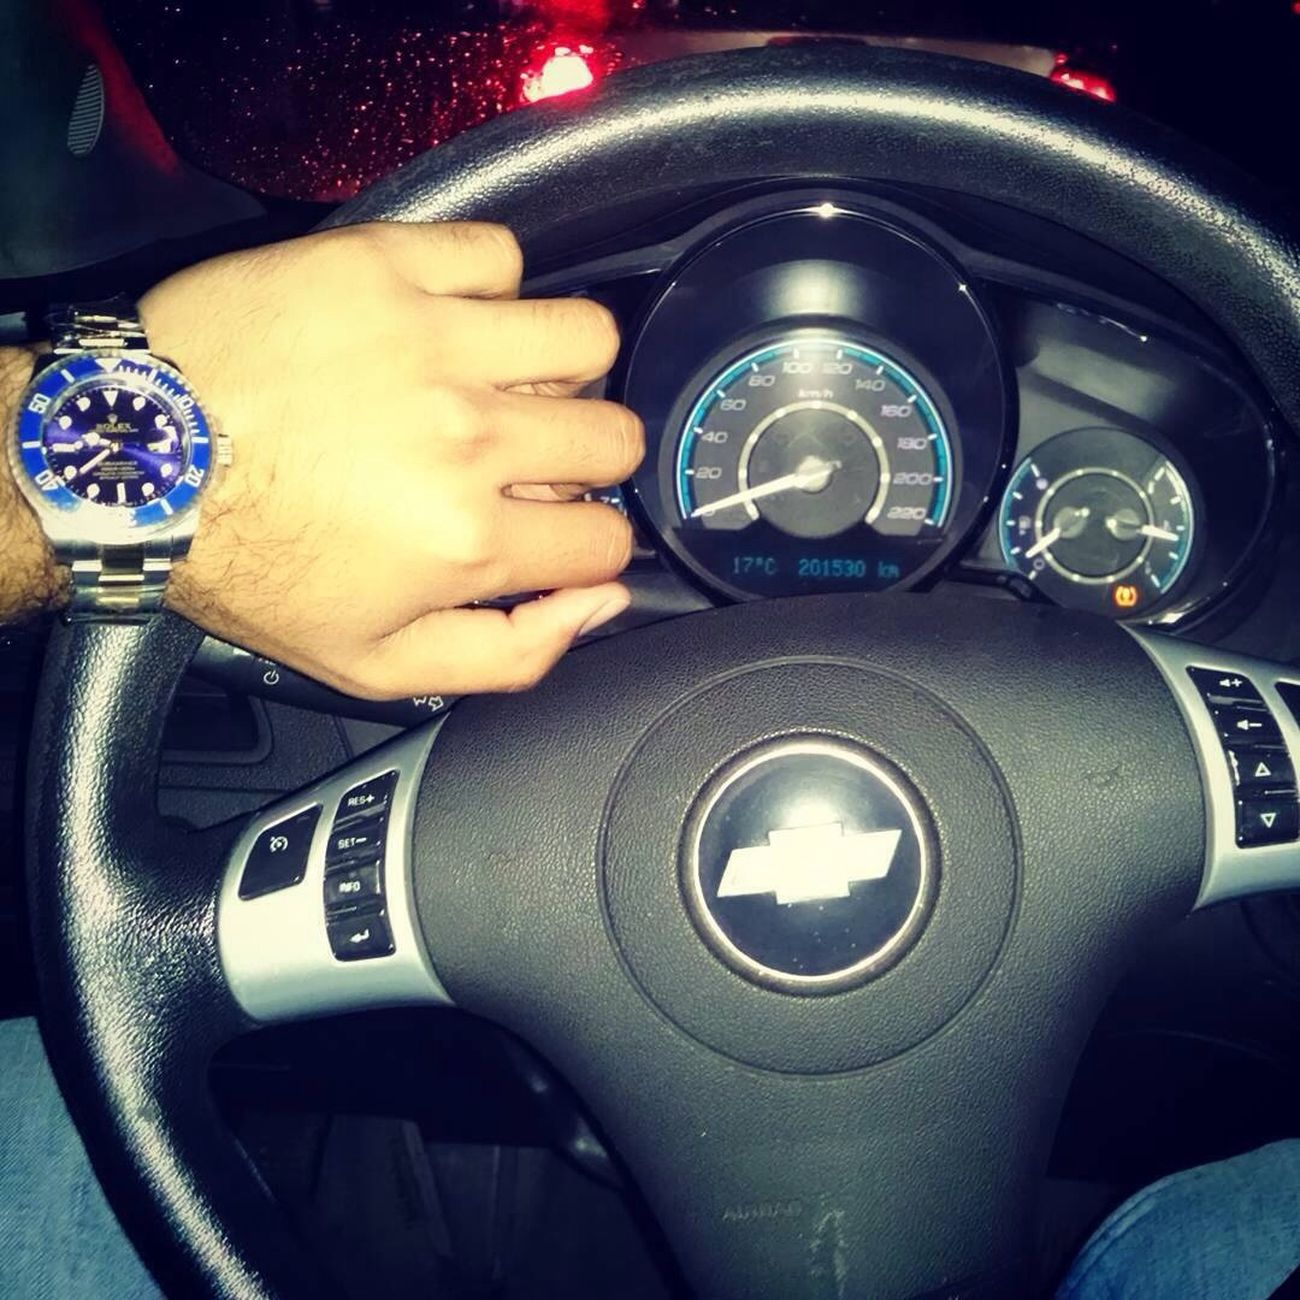 Rolex Reloj Enjoying Life Chevrolet My Car